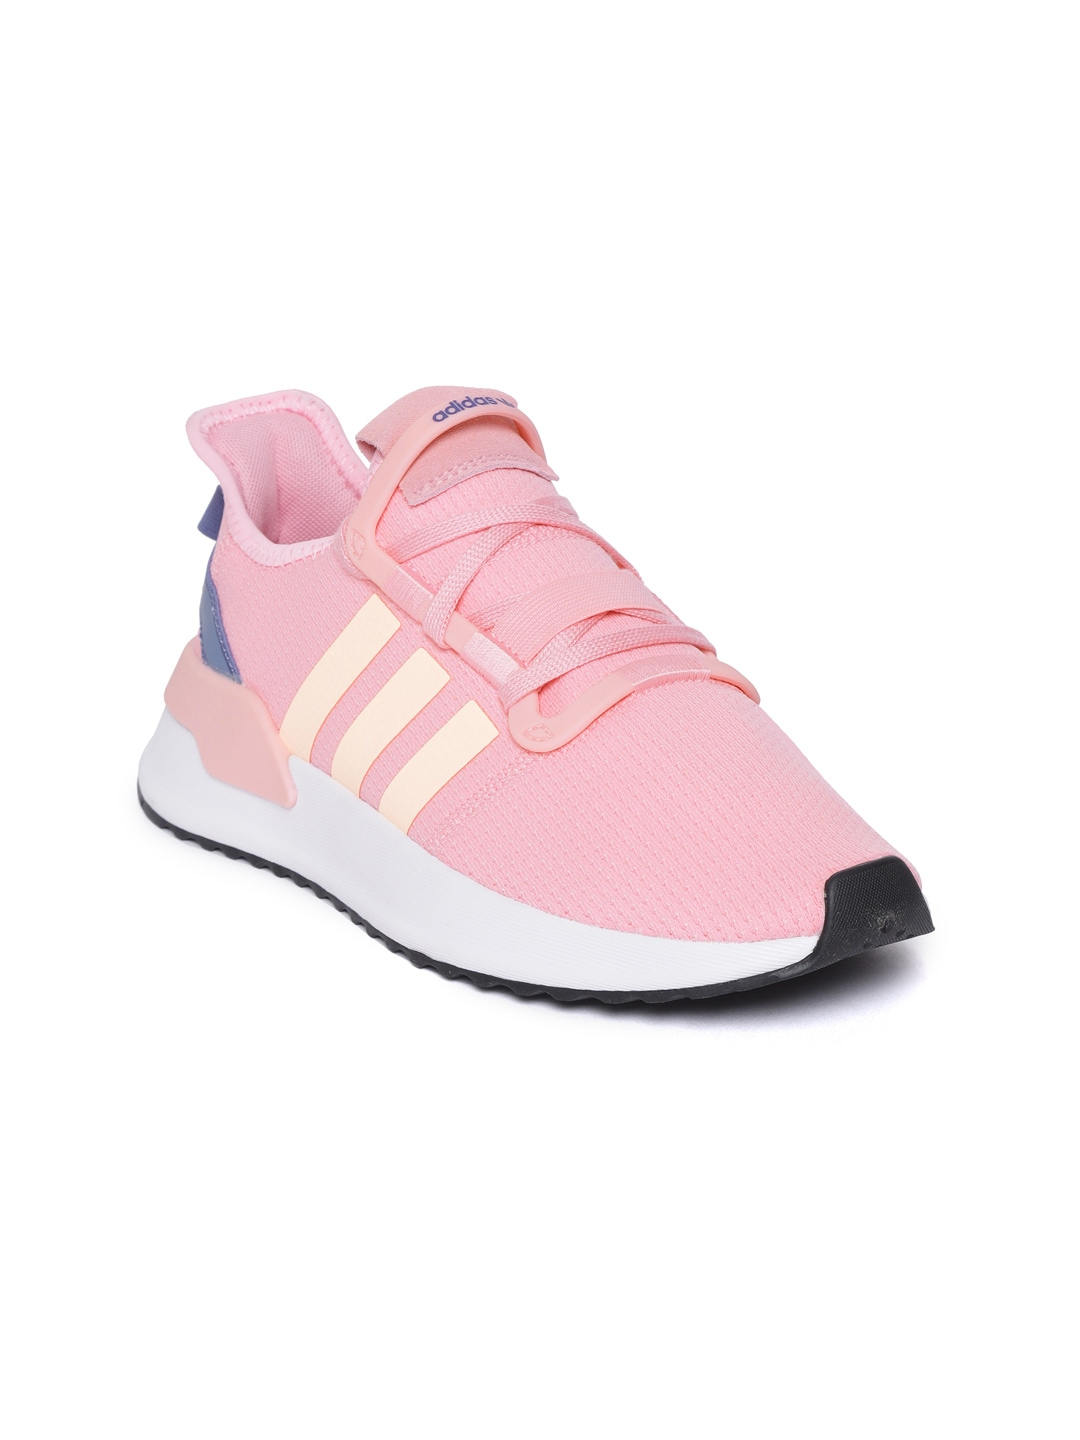 new arrival e0ef4 85b98 Women s Adidas Shoes - Buy Adidas Shoes for Women Online in India